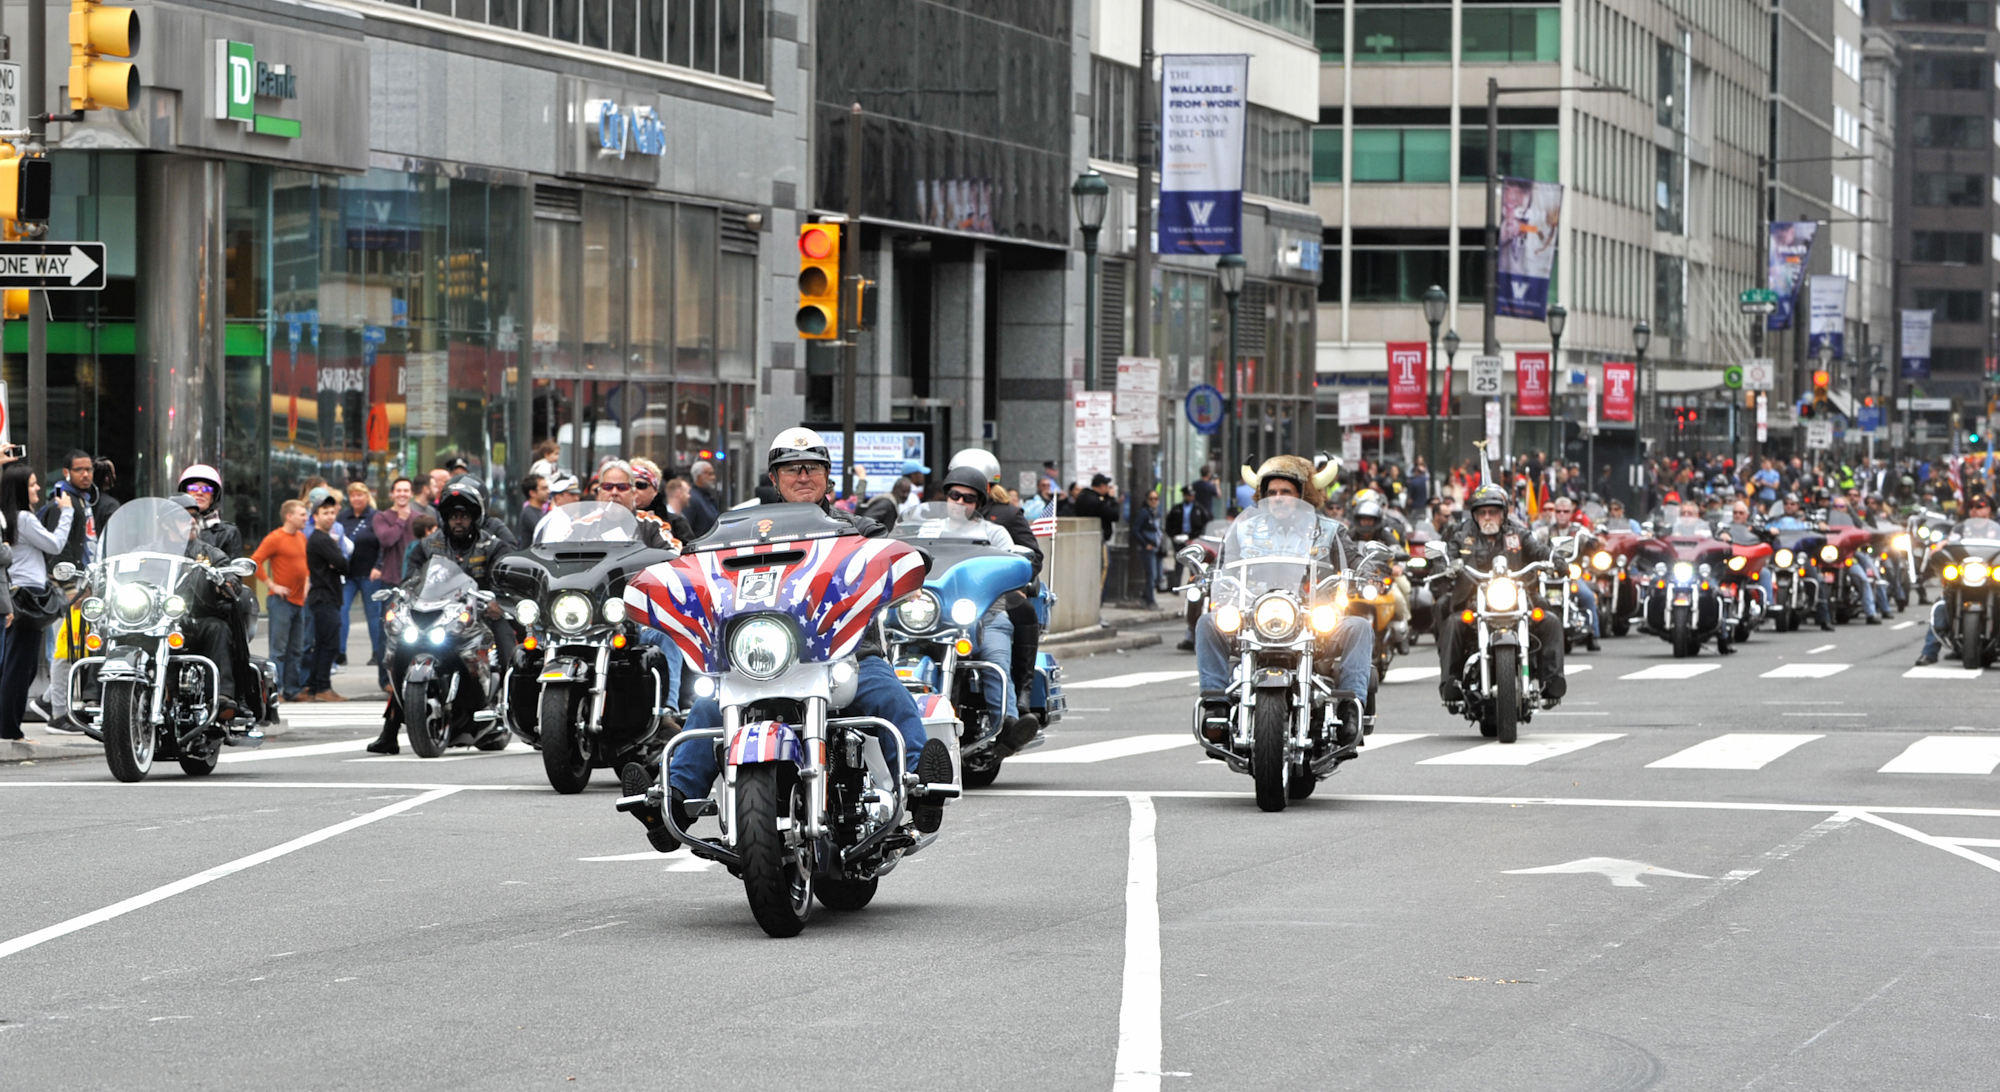 THE 2017 PHILADELPHIA VETERANS DAY PARADE